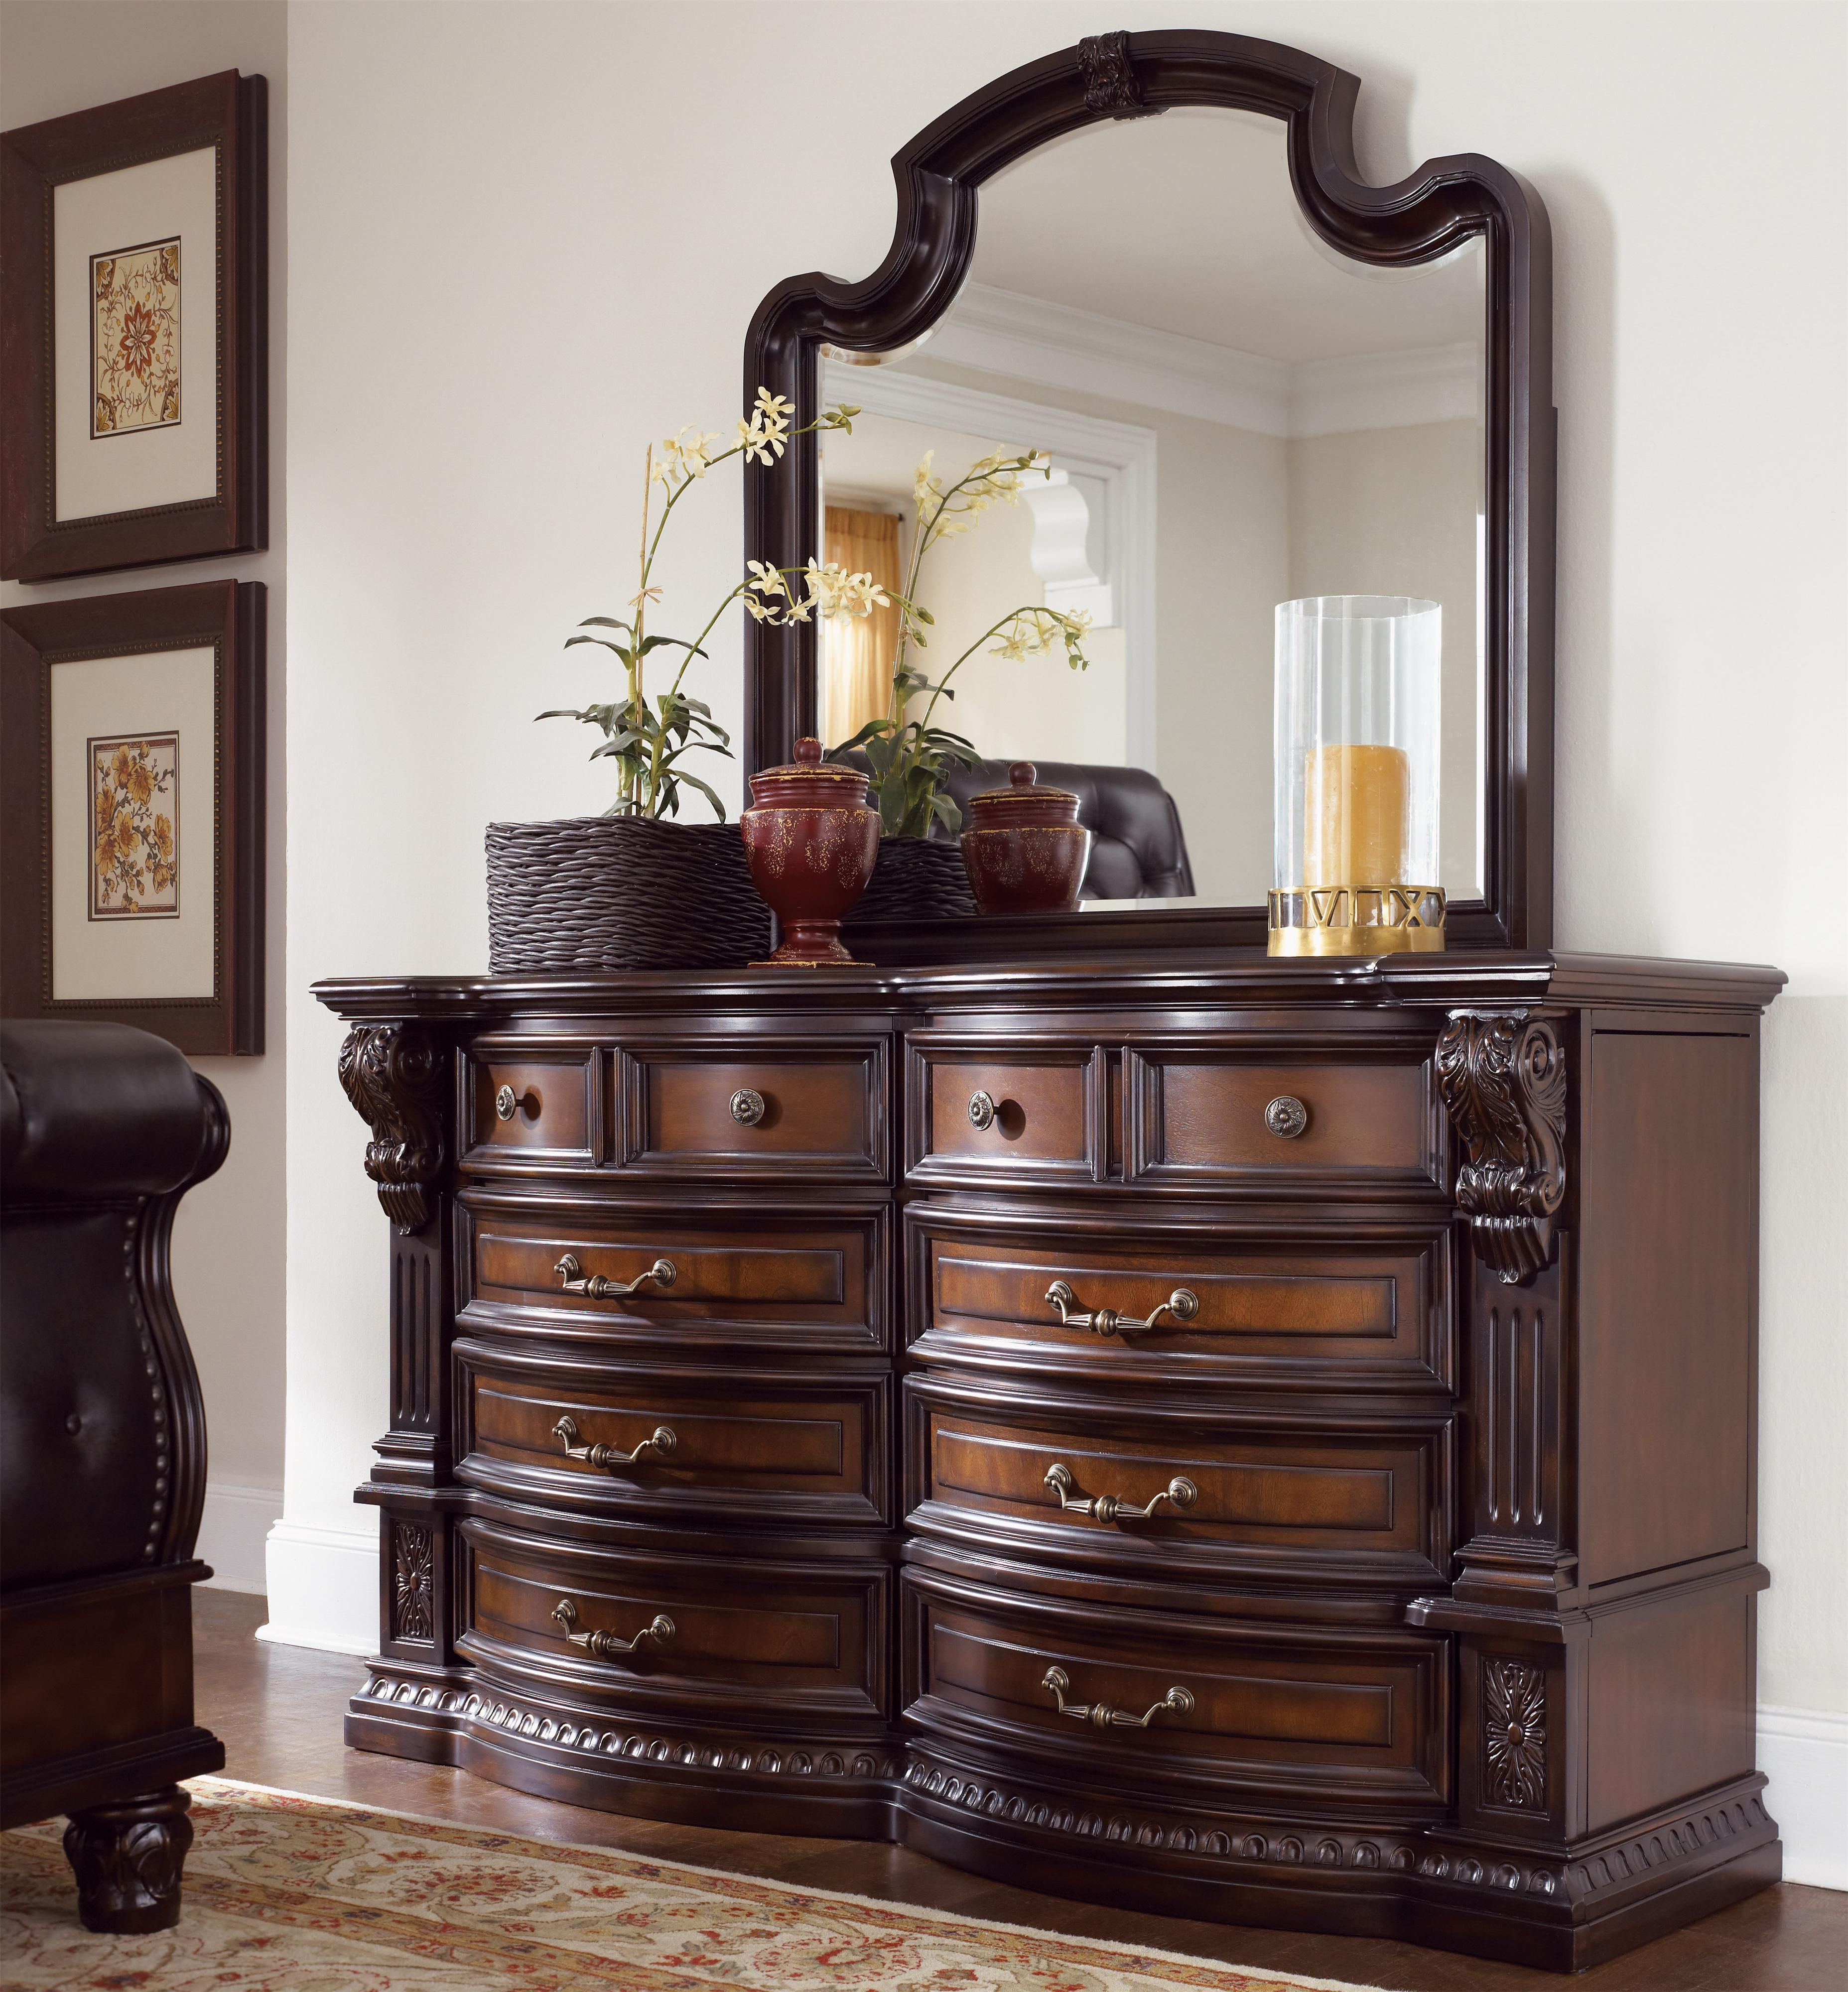 Fairmont Designs Grand Estates Drawer Dresser W Mirror Royal Furniture Dresser Mirror Sets